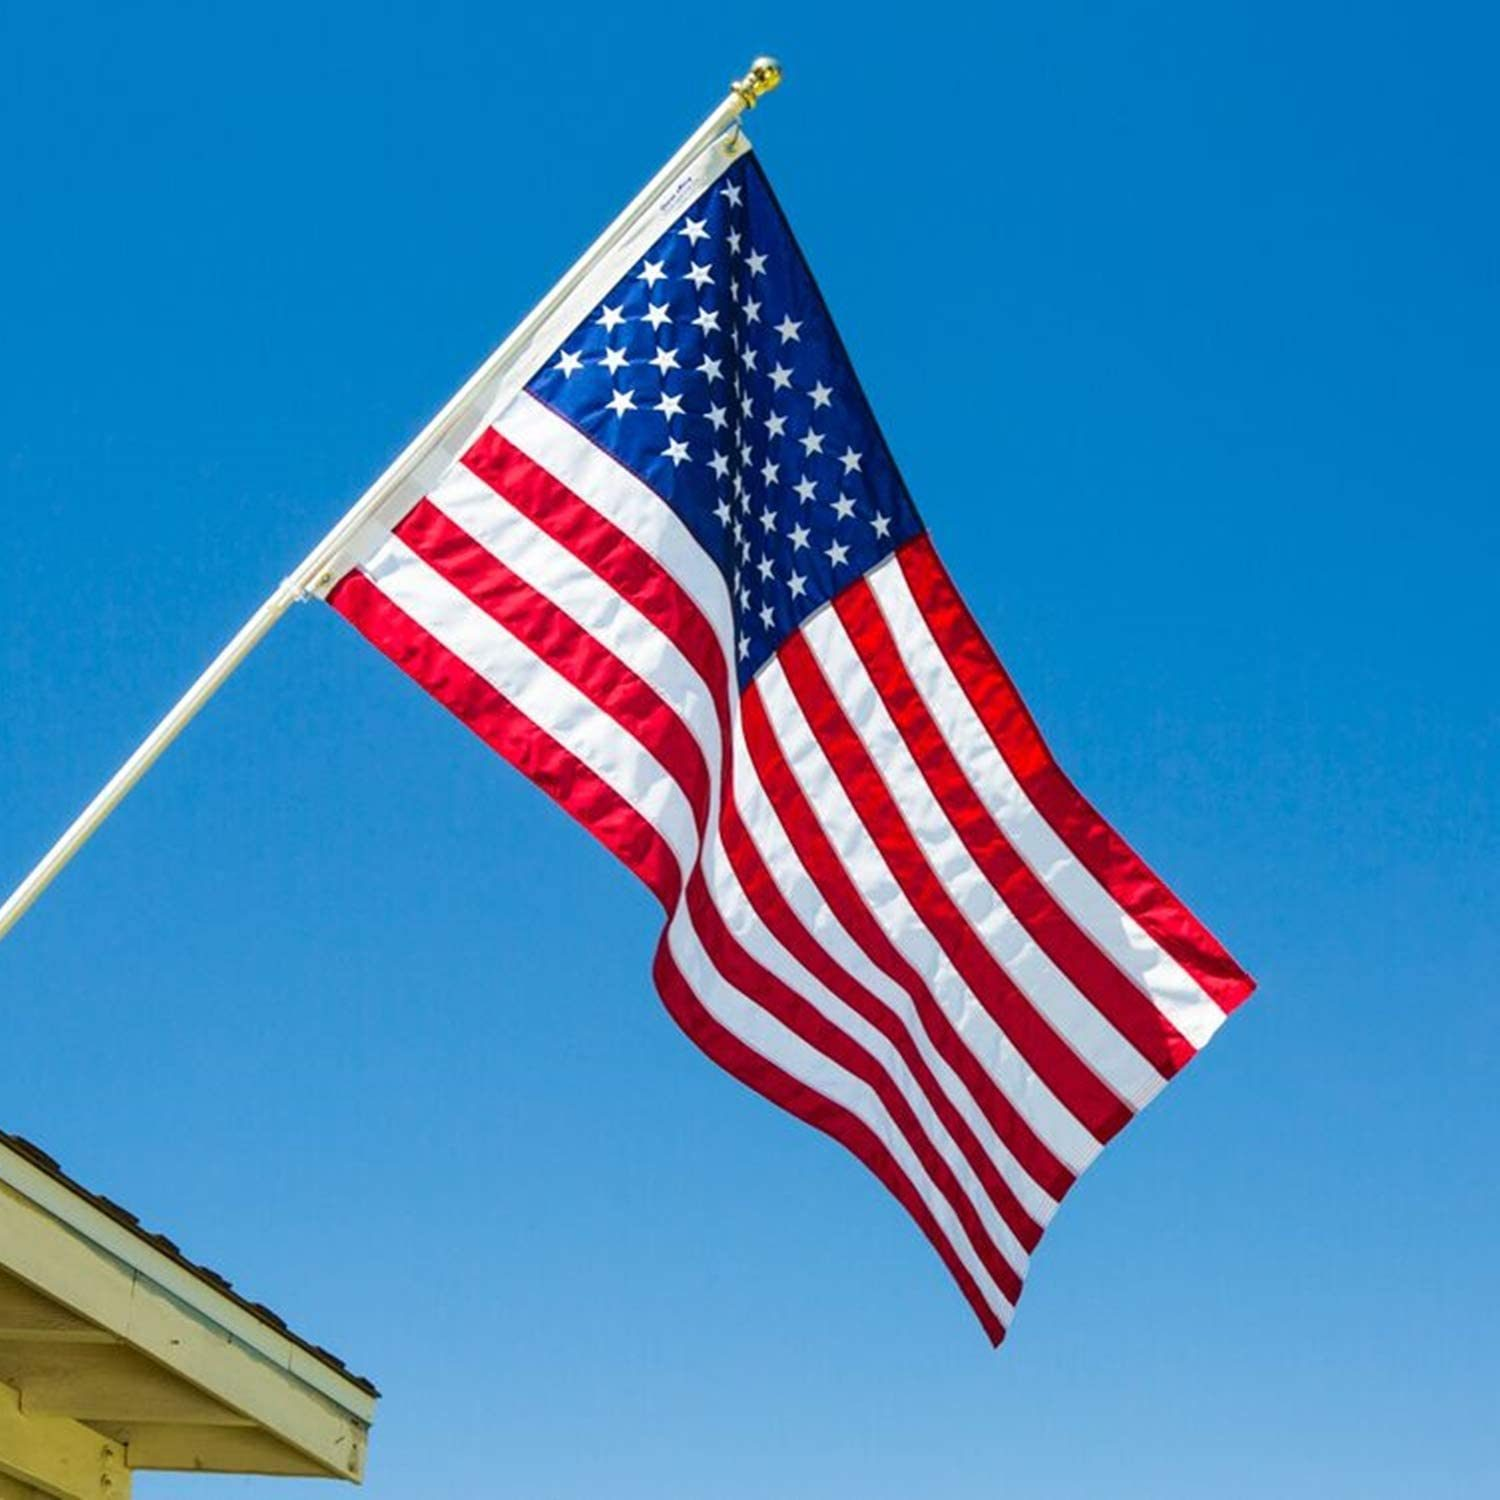 See Why This American Flag Has Over 12,000 Reviews on Amazon